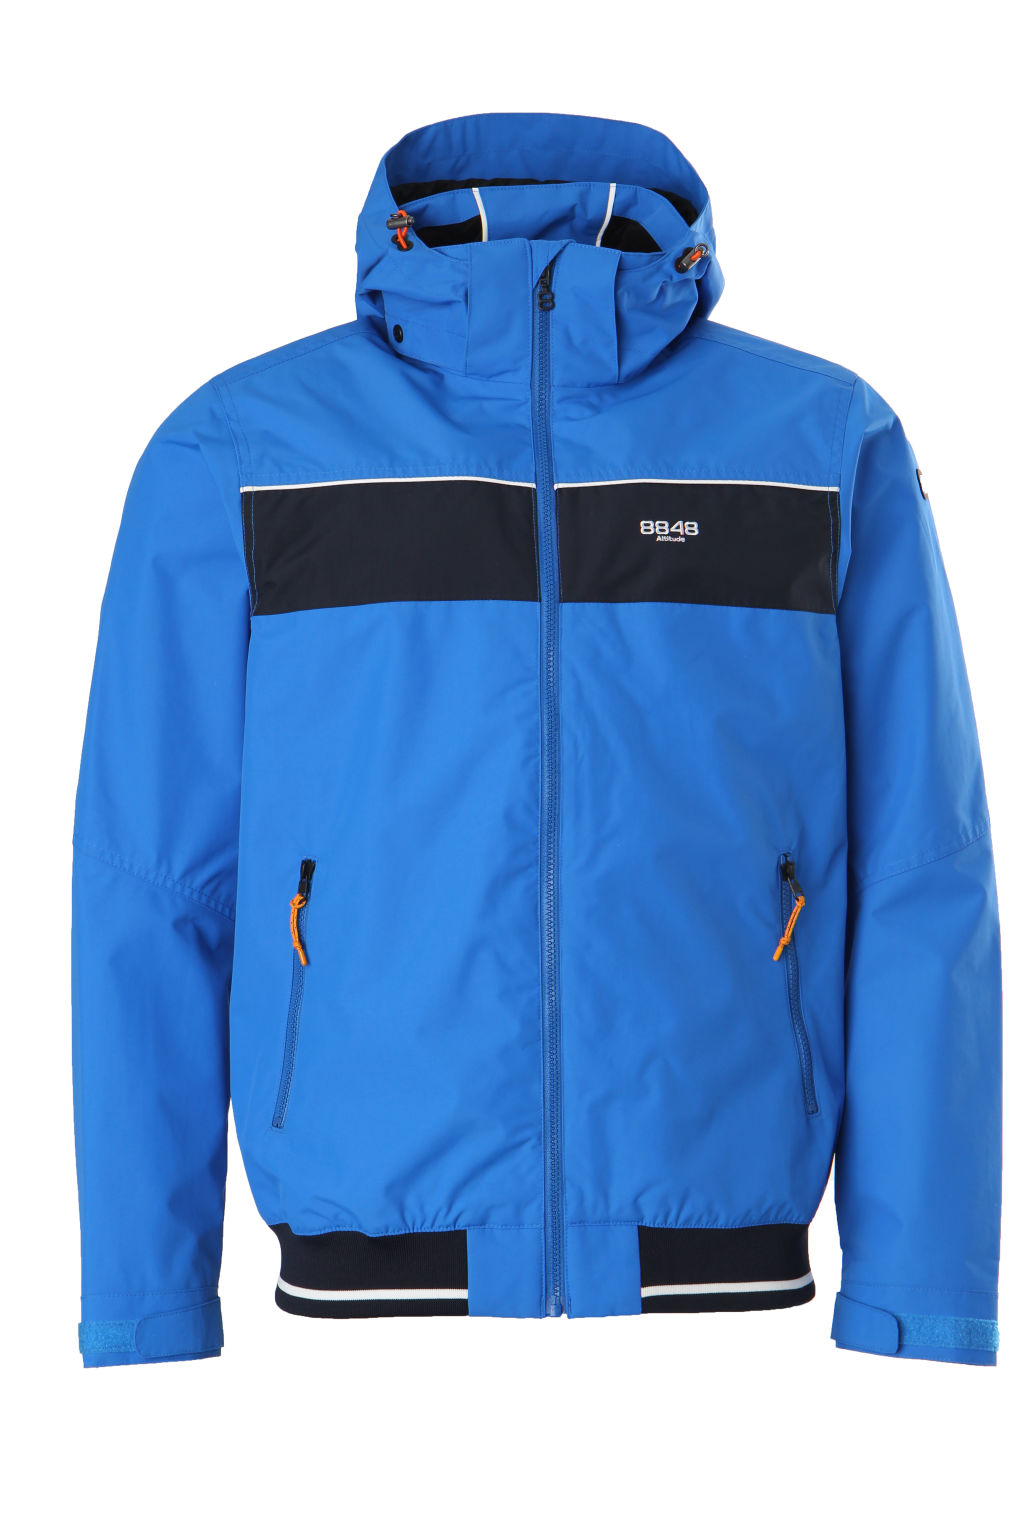 8848 Altitude Harbour Jacket M